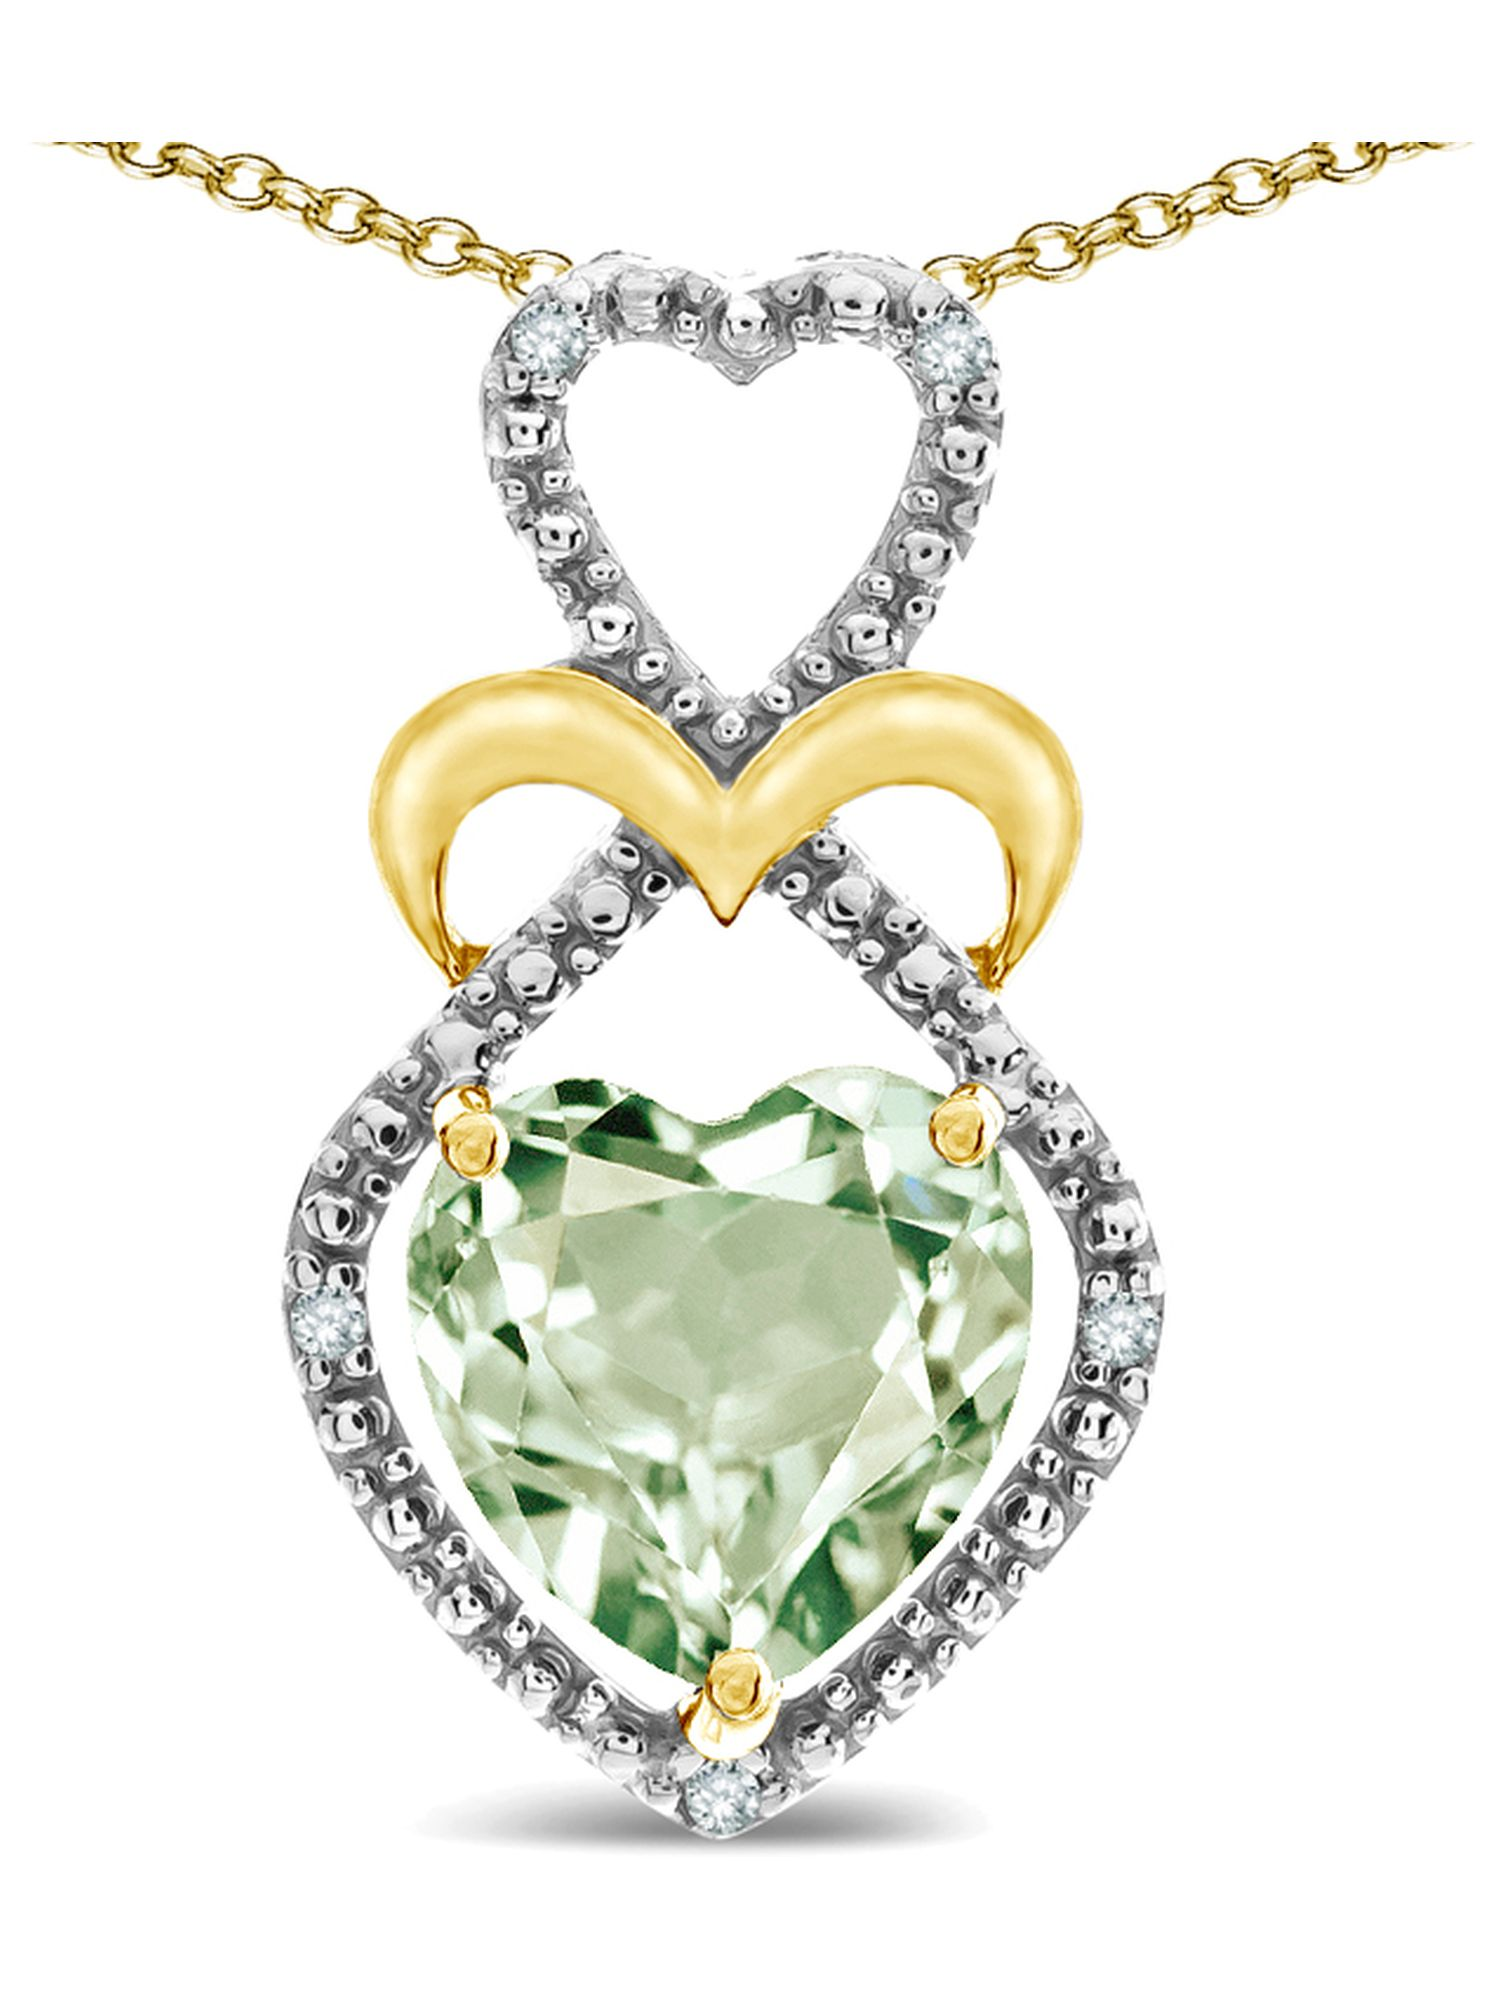 Star K Heart Shape 8mm Genuine Green Amethyst Heart Halo Embrace Pendant Necklace 10k Yellow Gold with Rhodium Finish